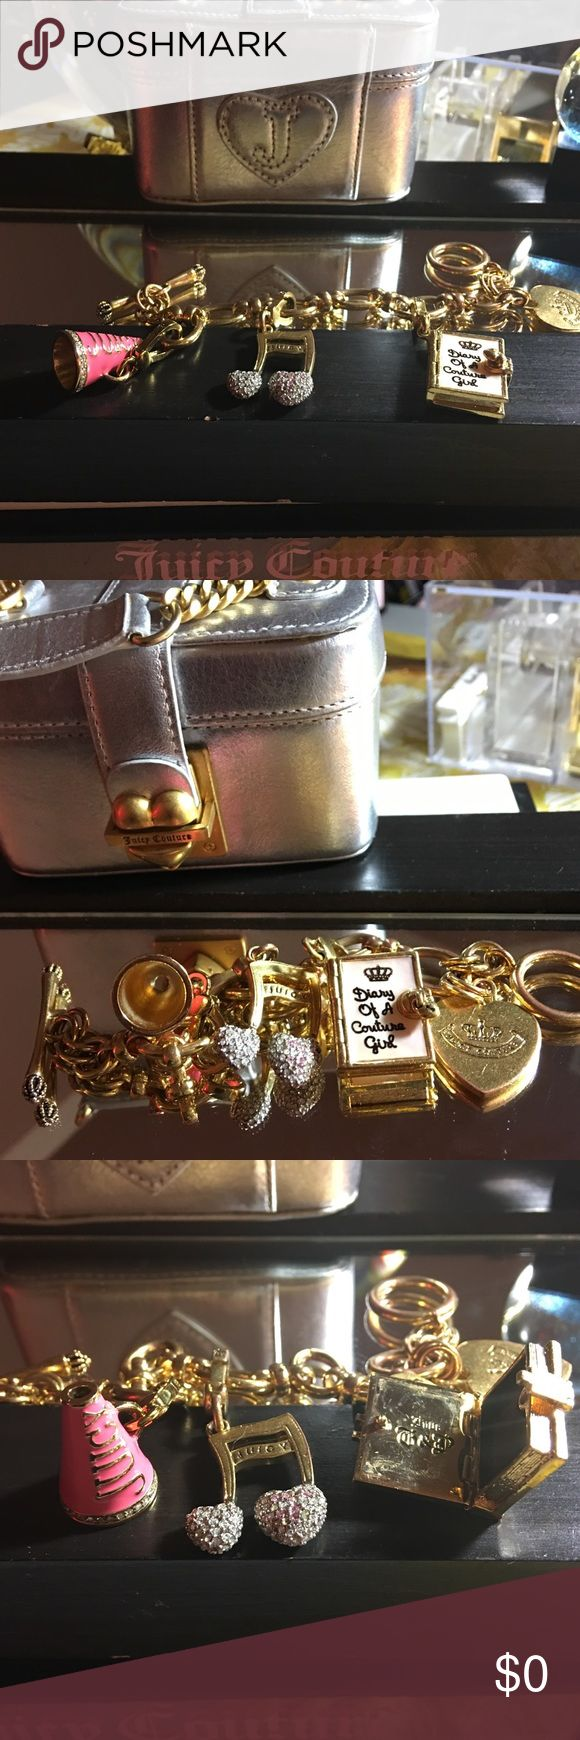 "Juicy Couture Bracelet: Megaphone, JC Diary, Note Juicy Couture Starter Bracelet w/ 3 charms. Small Gold Megaphone {all stones intact, v slight discoloration on inside- not noticeable}, Diary of a JC Girl {8 out of 10}, Music Note {missing 4/5 stones}. LOOK AT ALL PICTURES-they are part of the description-I bundle, offer 5% off multiple items, & i ship quick. OPEN TO OFFERS & Negotiations (I am willing to discuss FAIR offers!!) they will ONLY CONSIDERED through using the ""OFFER"" BUTTON…"